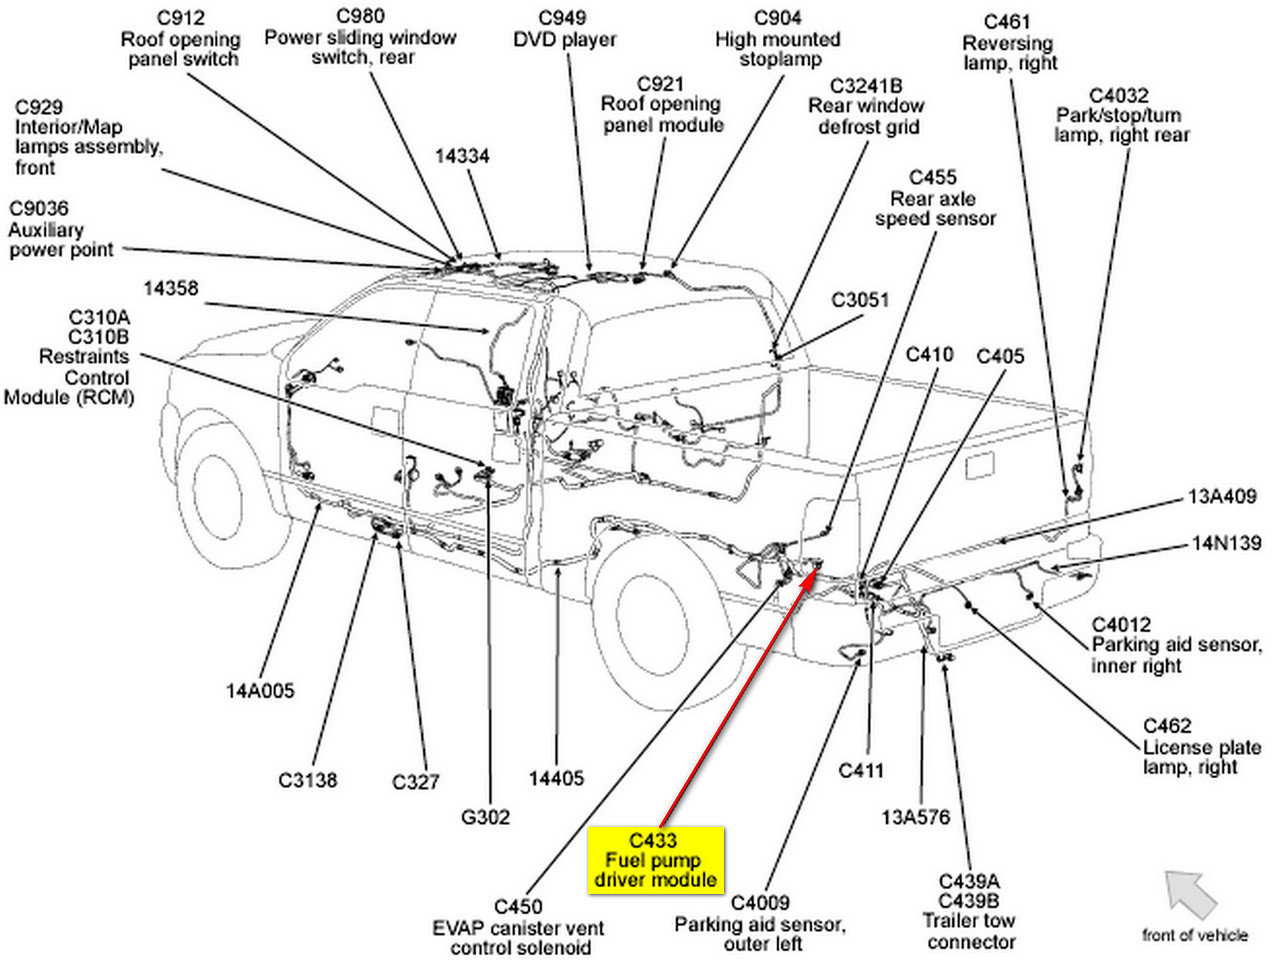 95 F150 Fuel Tank Diagram Wiring Libraries Pump Wire For 1996 Ford F 350 Dual System Simple Schema1995